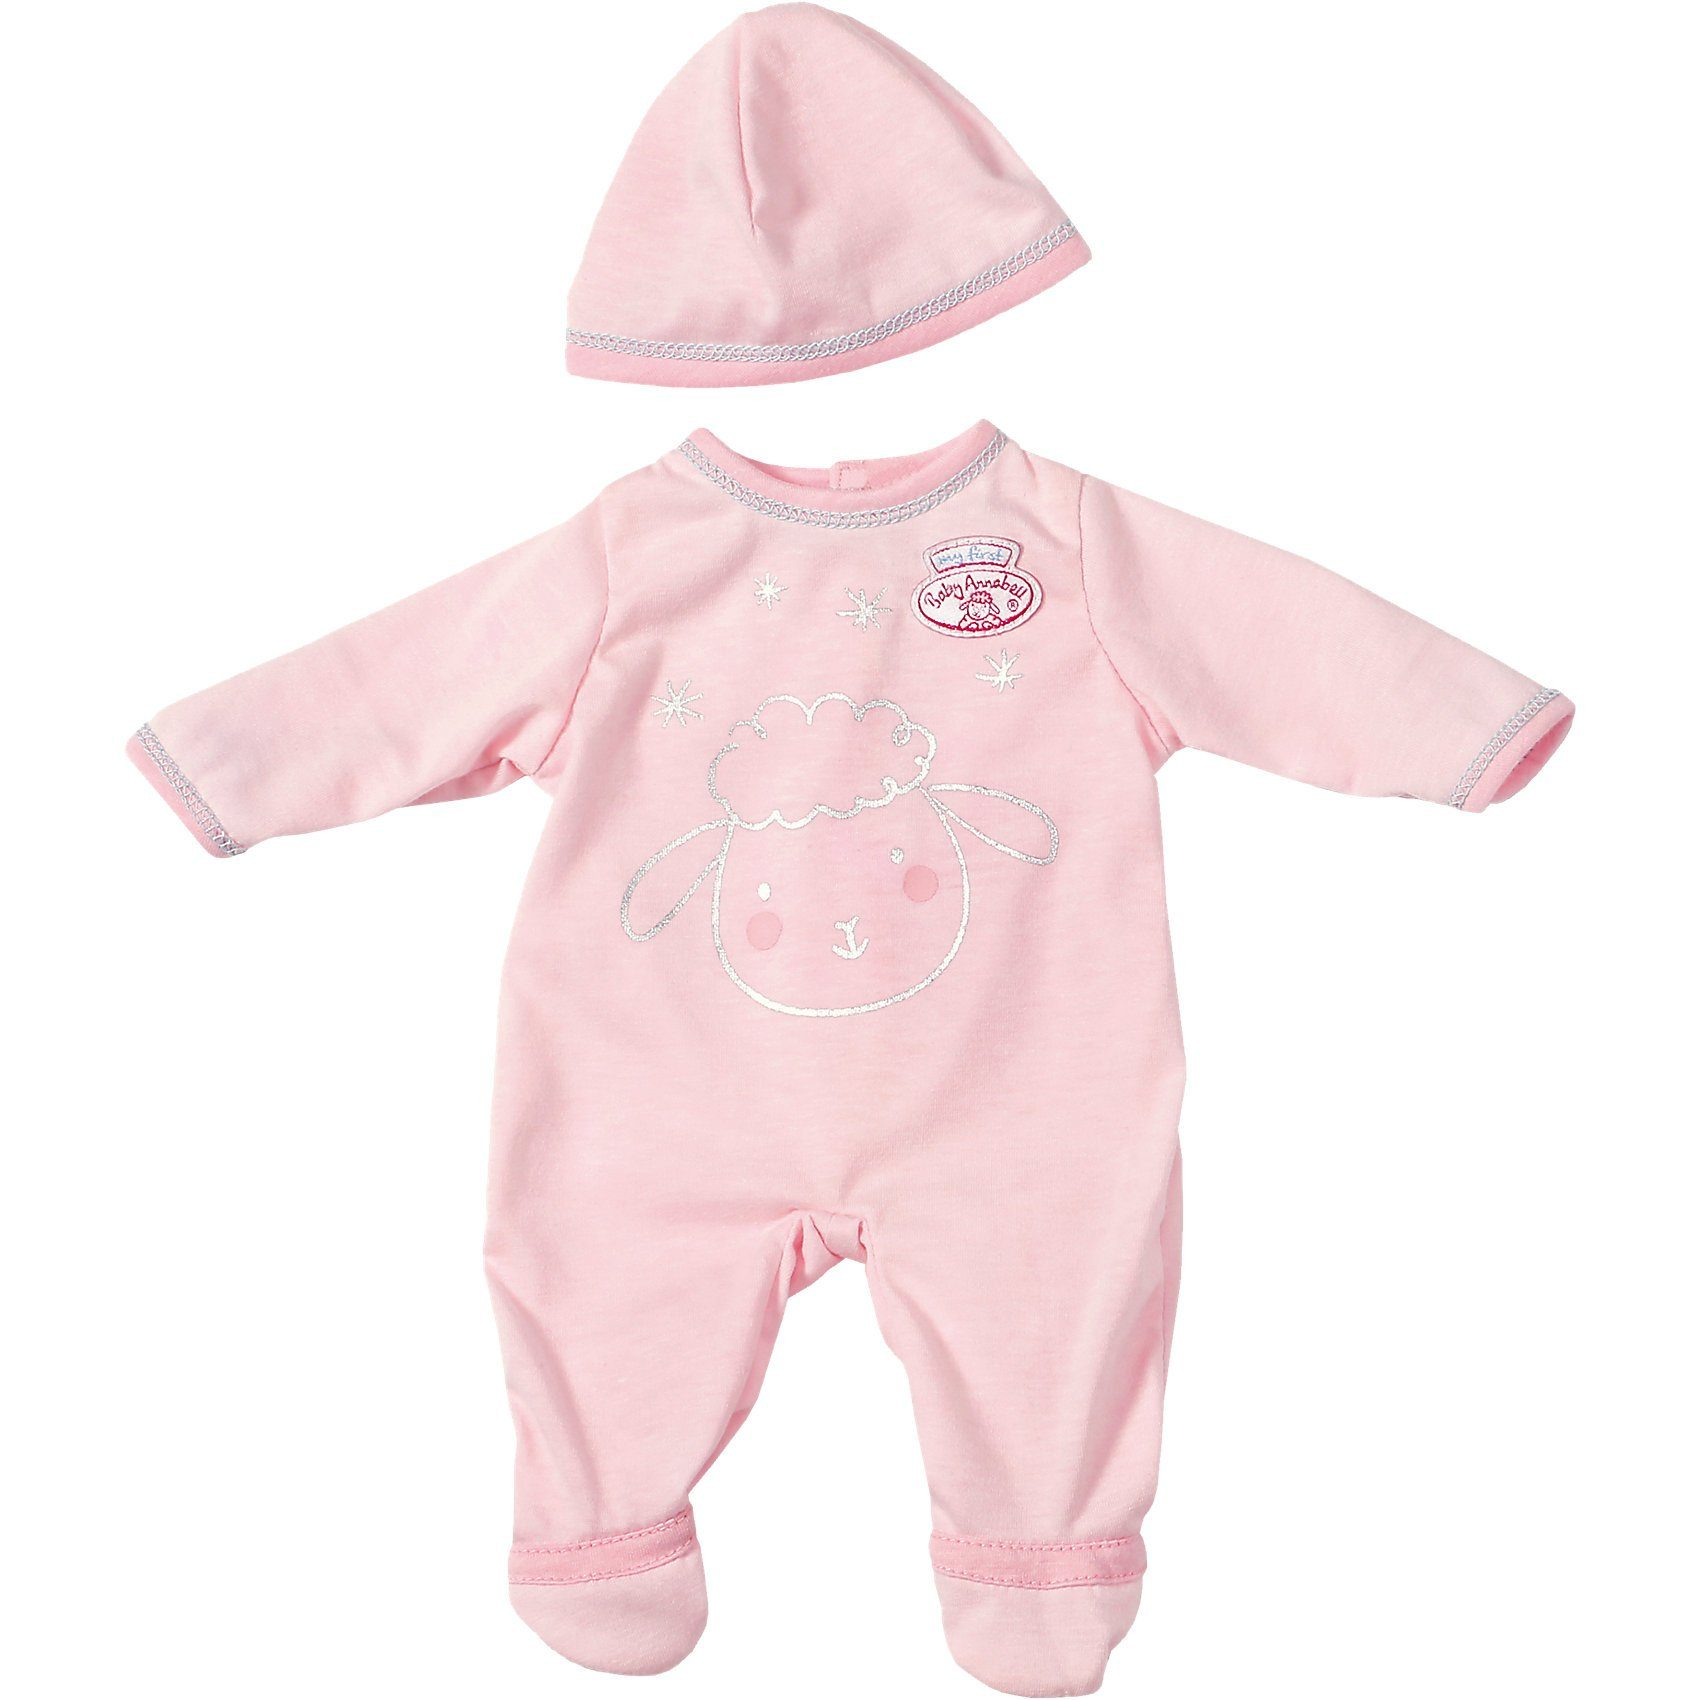 Zapf Creation my first Baby Annabell® Puppenkleidung Nachtoutfit, 36 cm